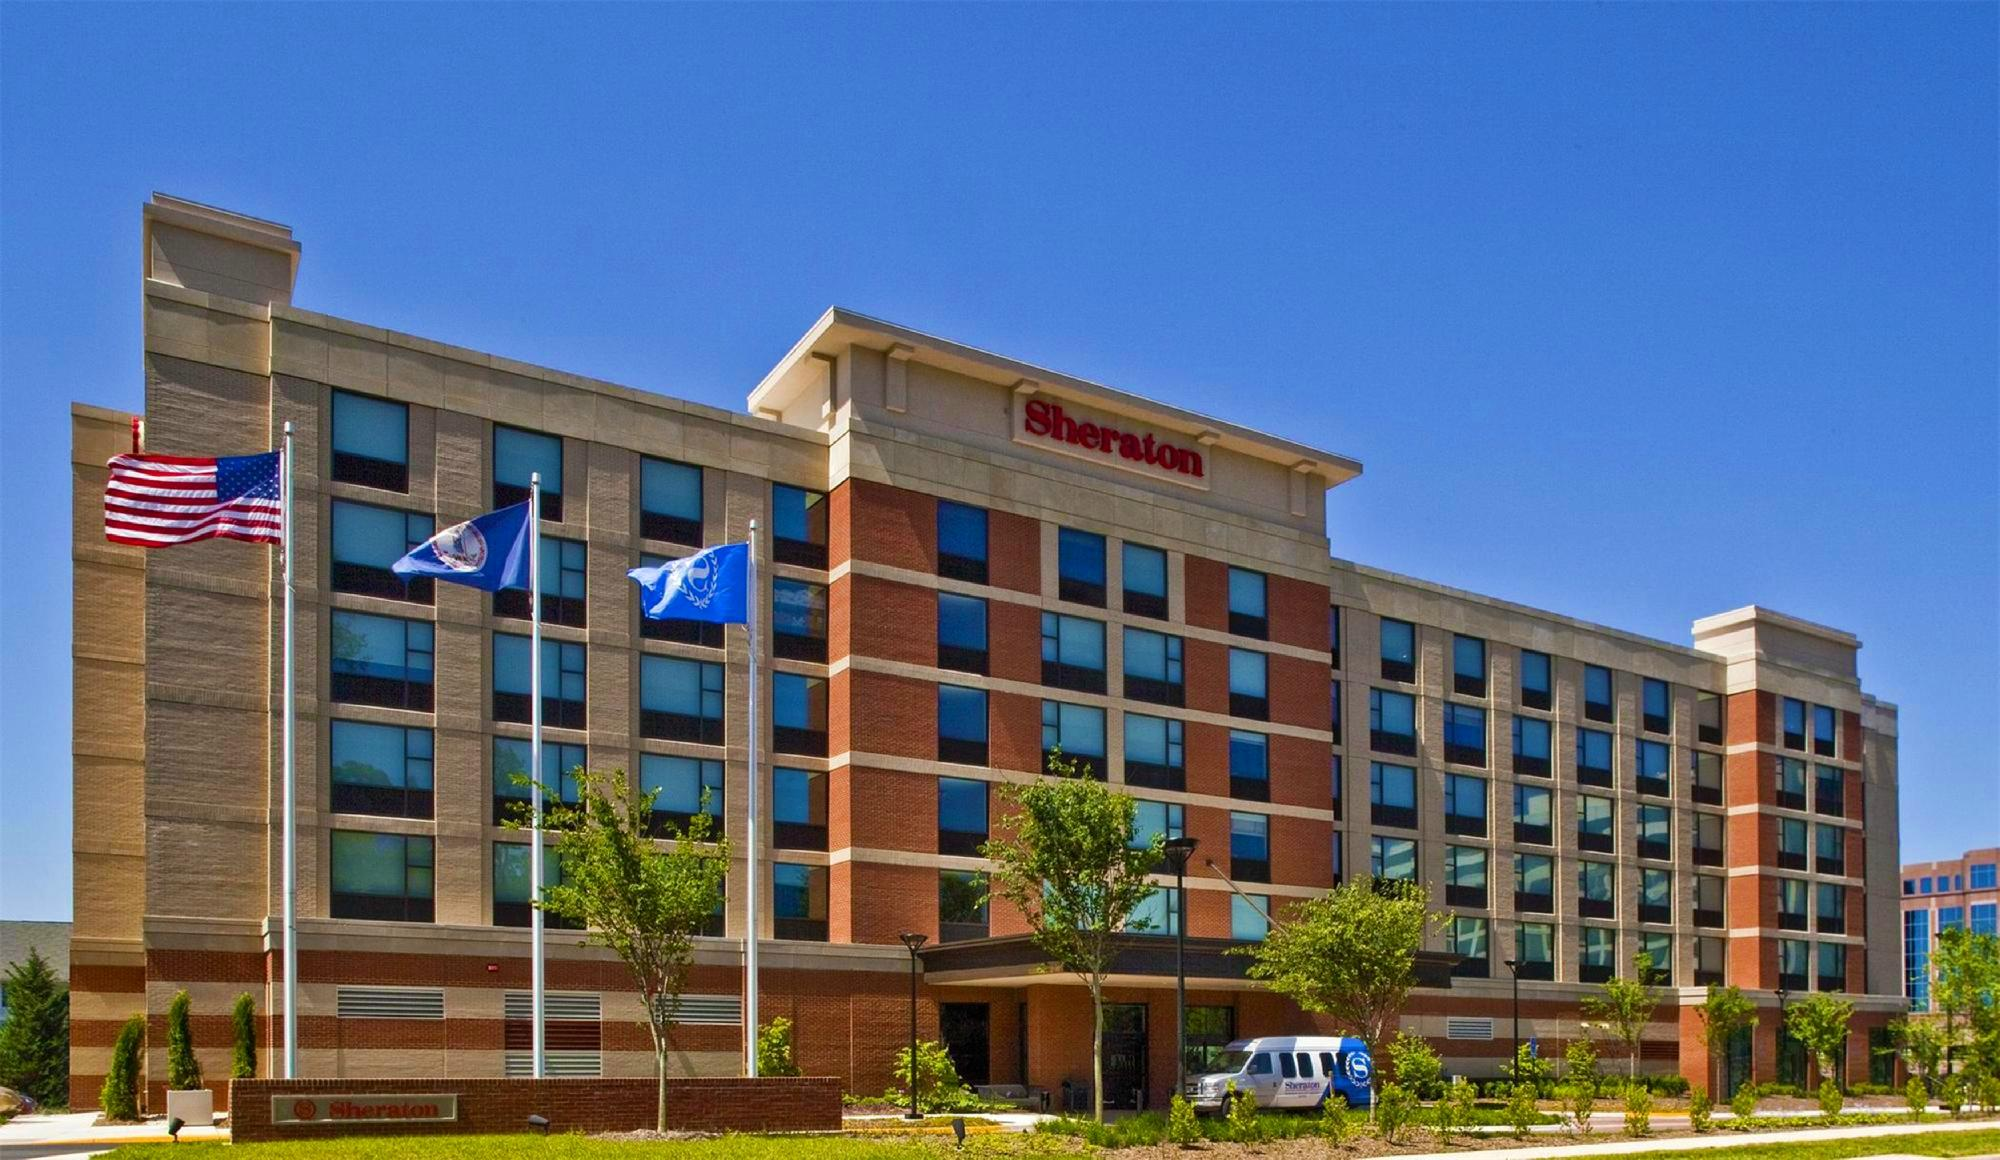 Sheraton Herndon Dulles Airport Hotel